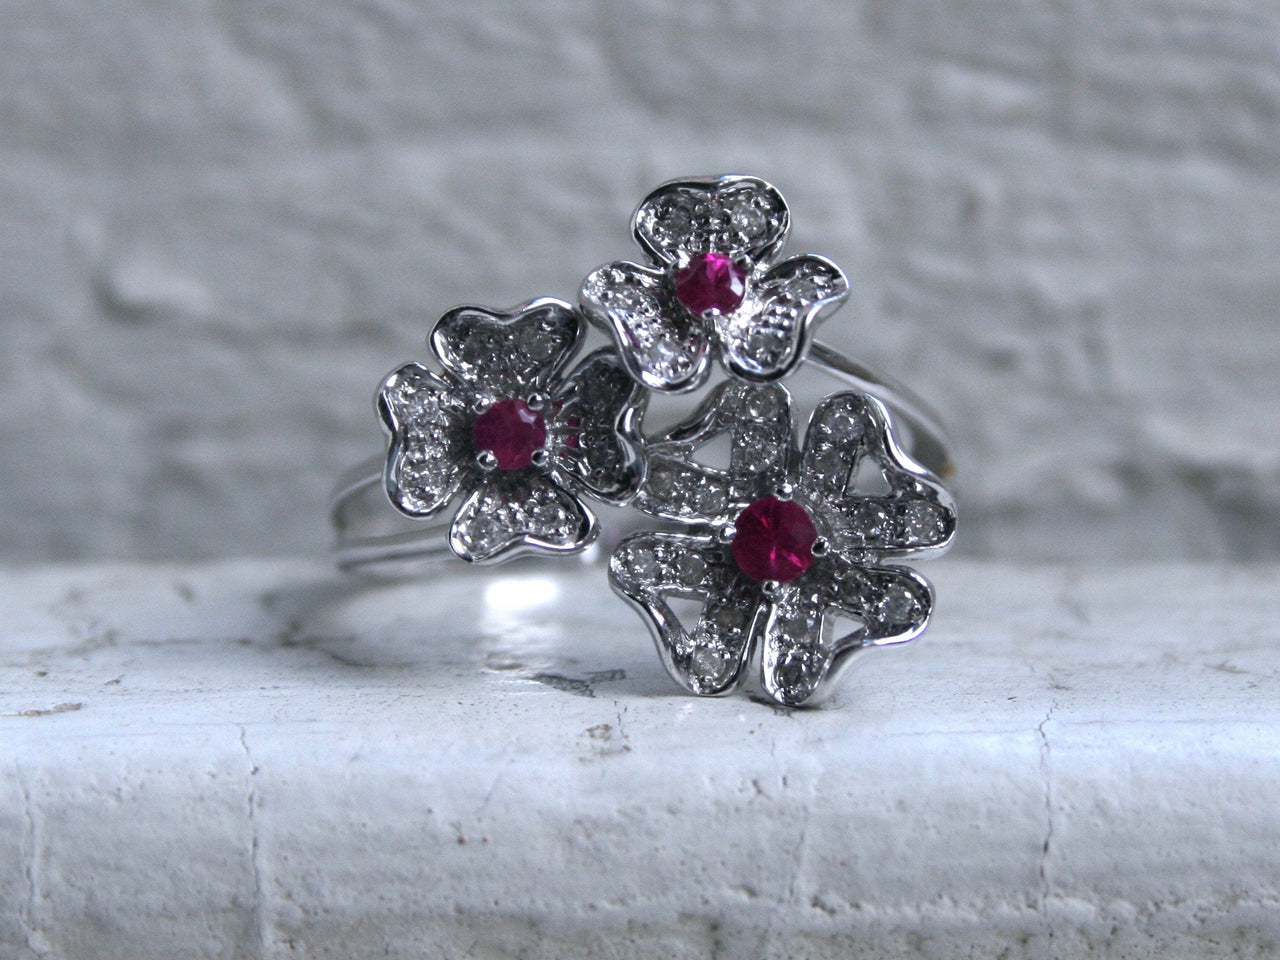 Vintage Floral 14K White Gold Diamond and Ruby Ring Engagement Ring by Le Vian- 1.64ct.